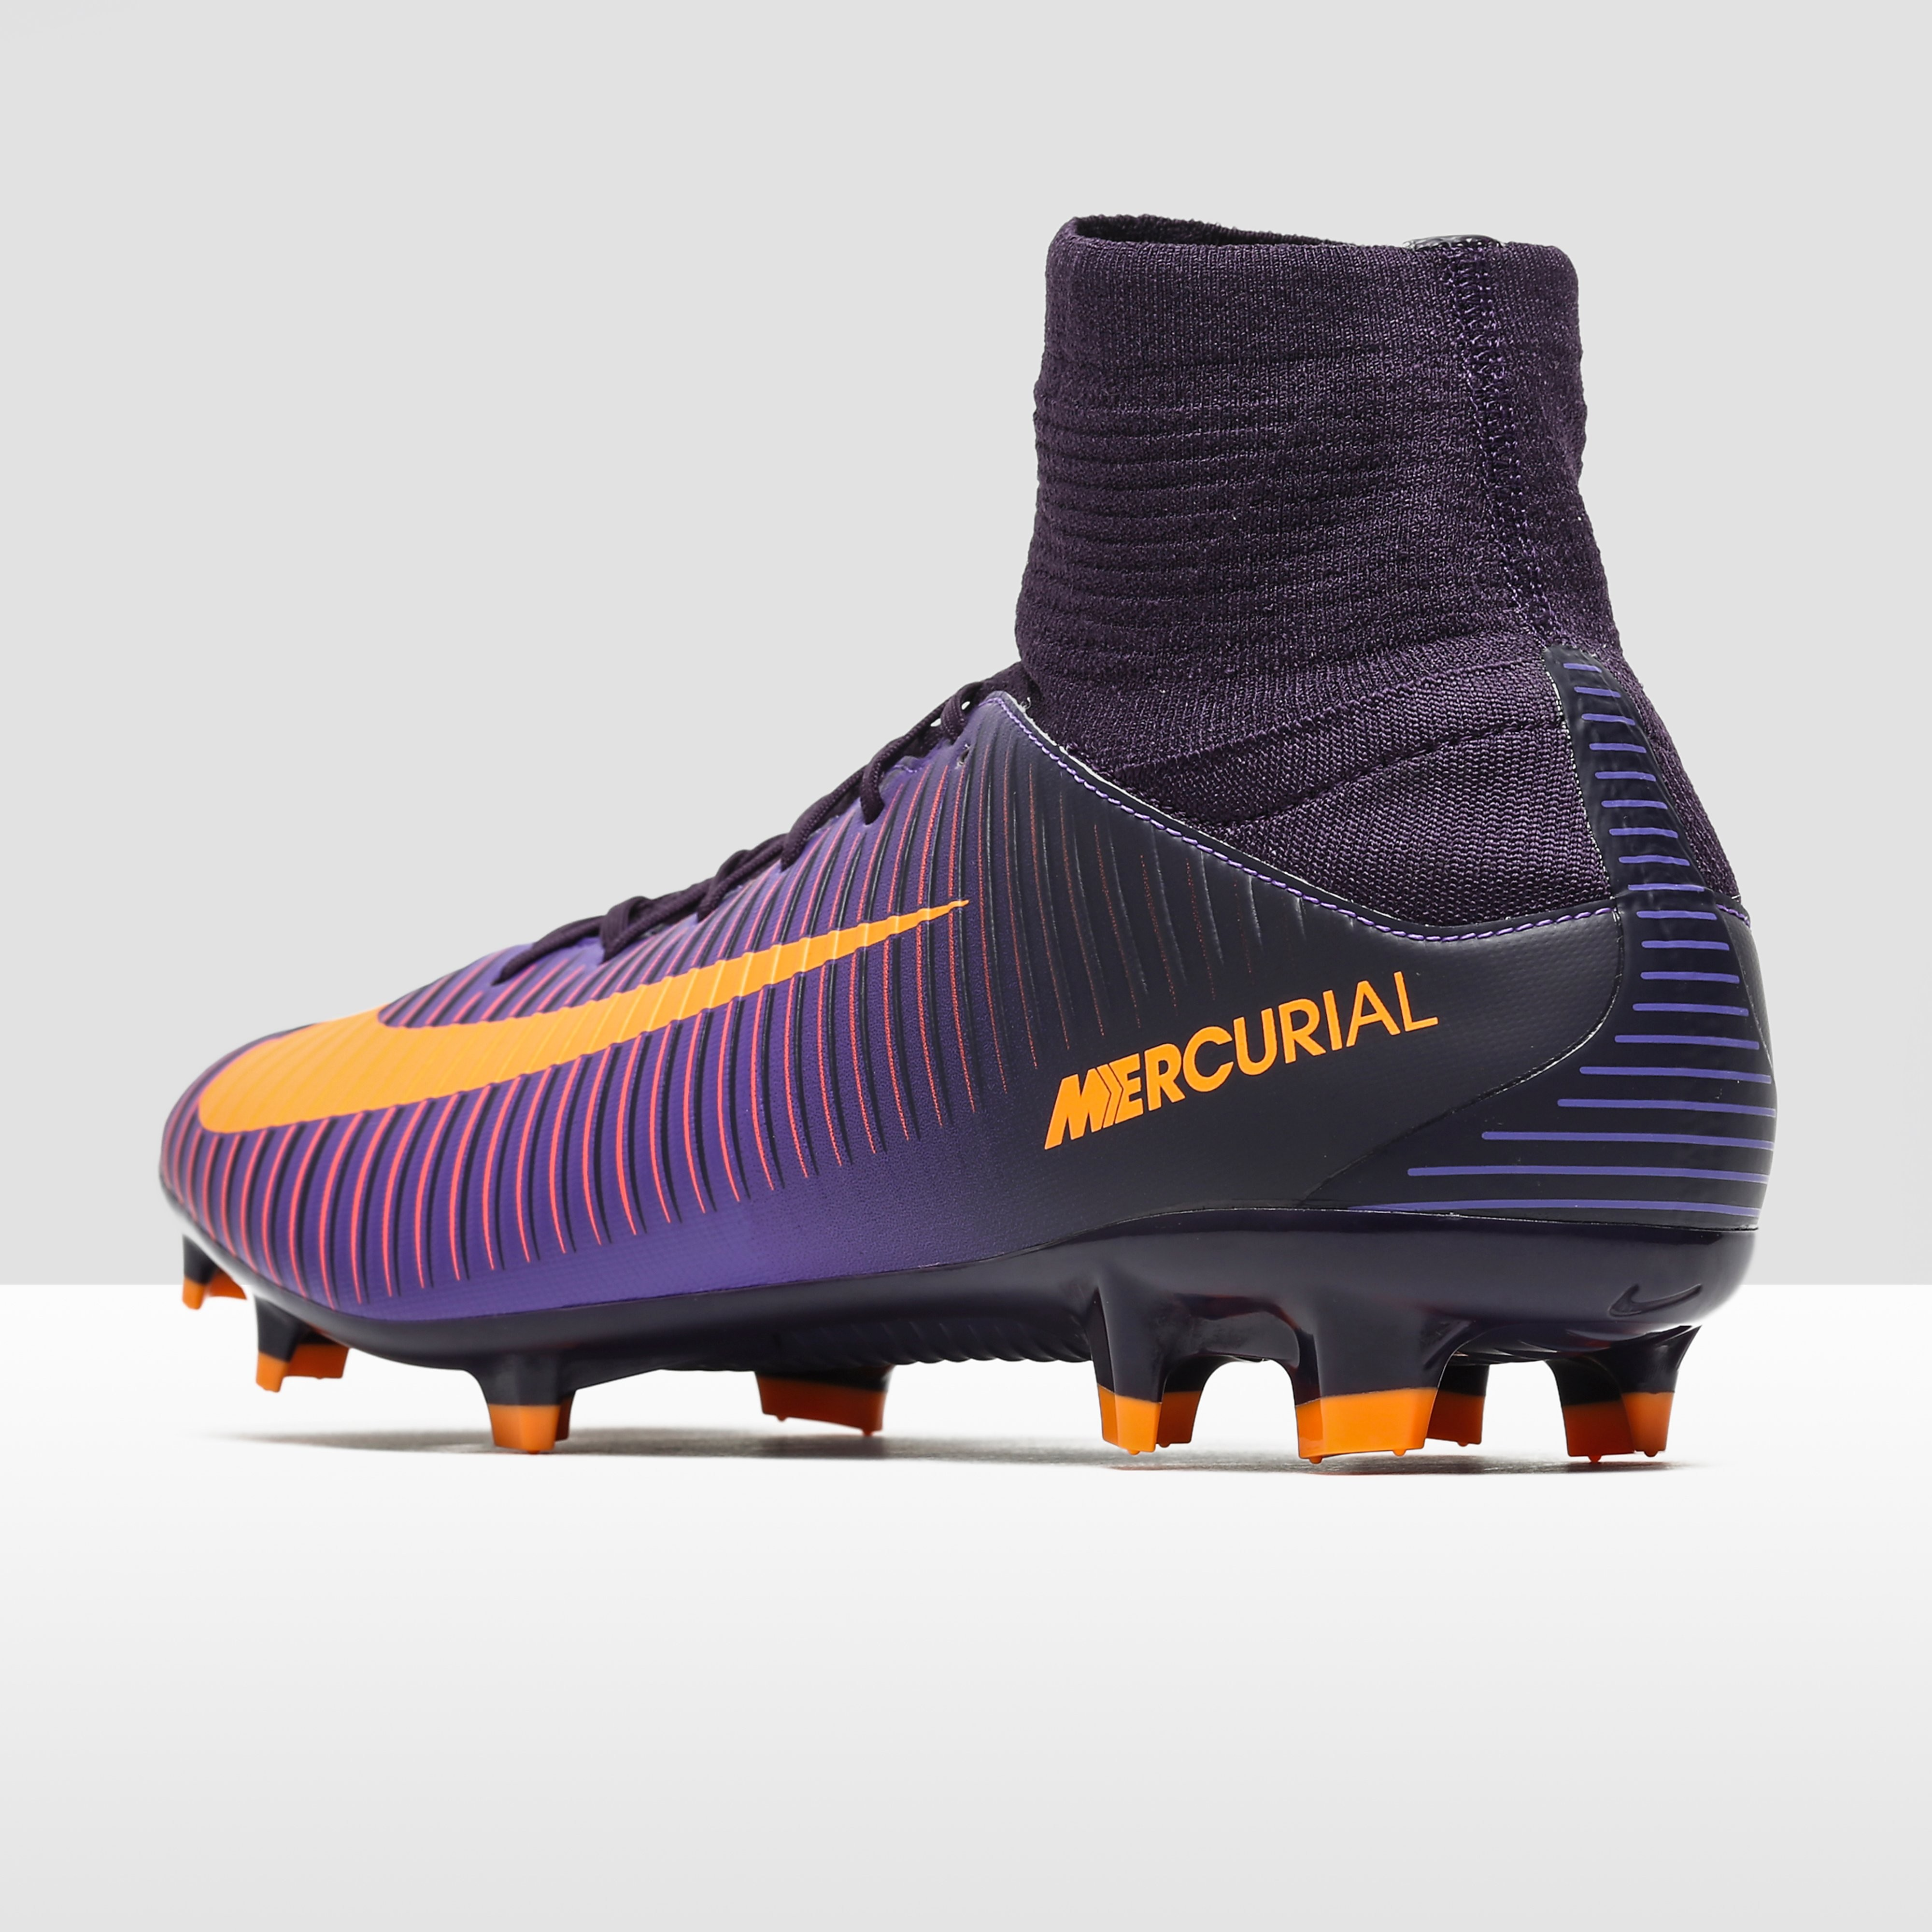 Nike Floodlight Mercurial Veloce III DF FG Football Boots